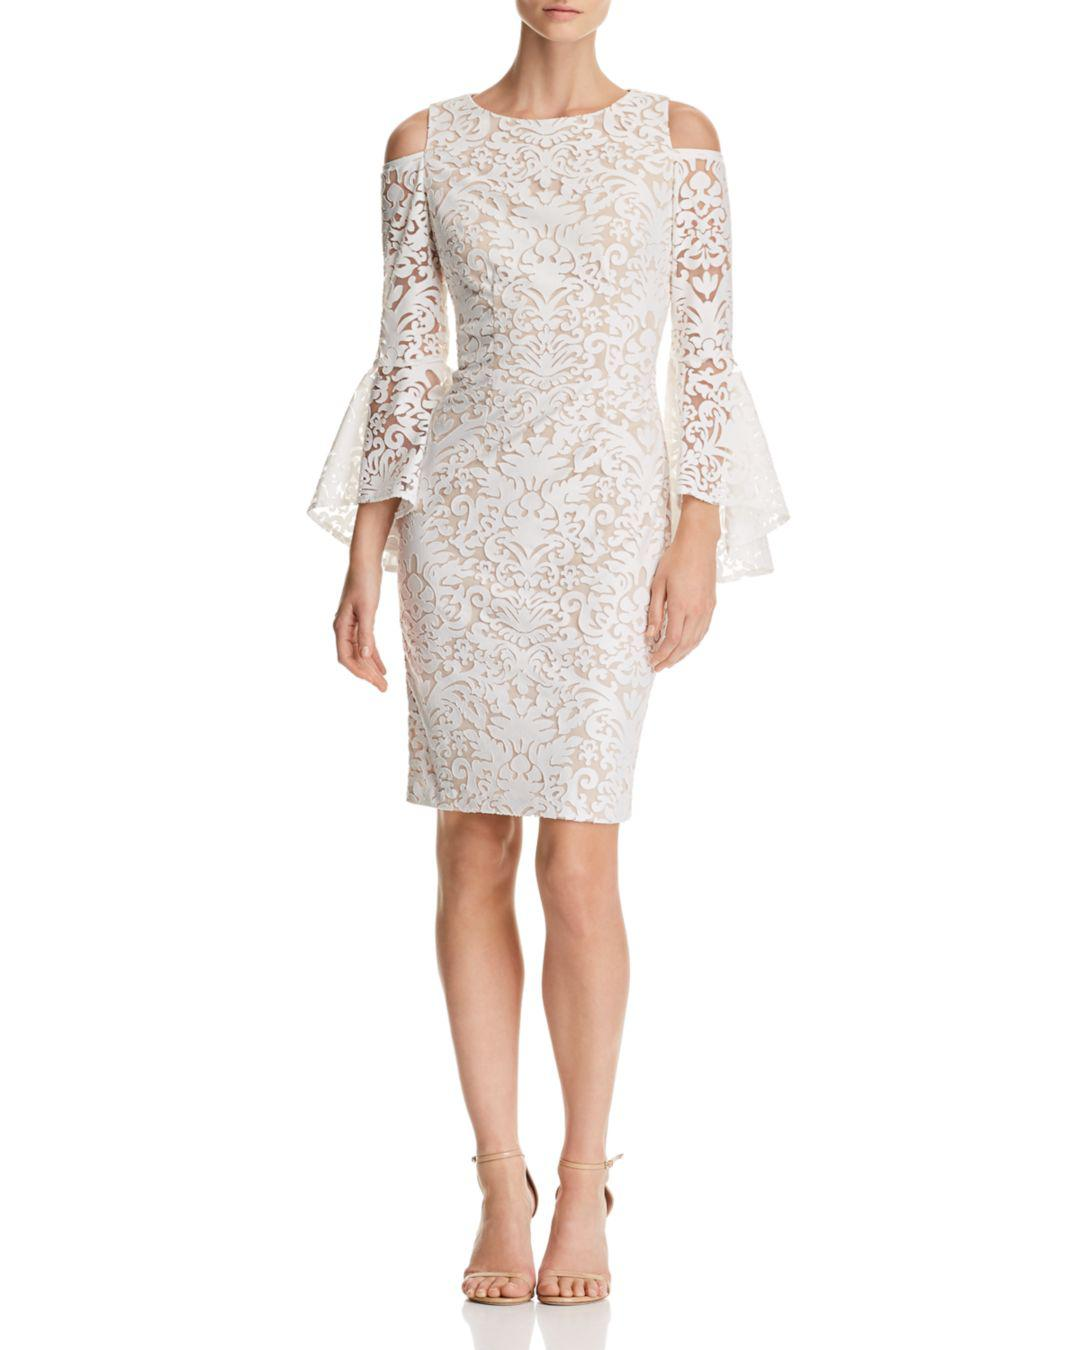 19baea69c442 Lyst - Aqua Cold-shoulder Lace Dress in White